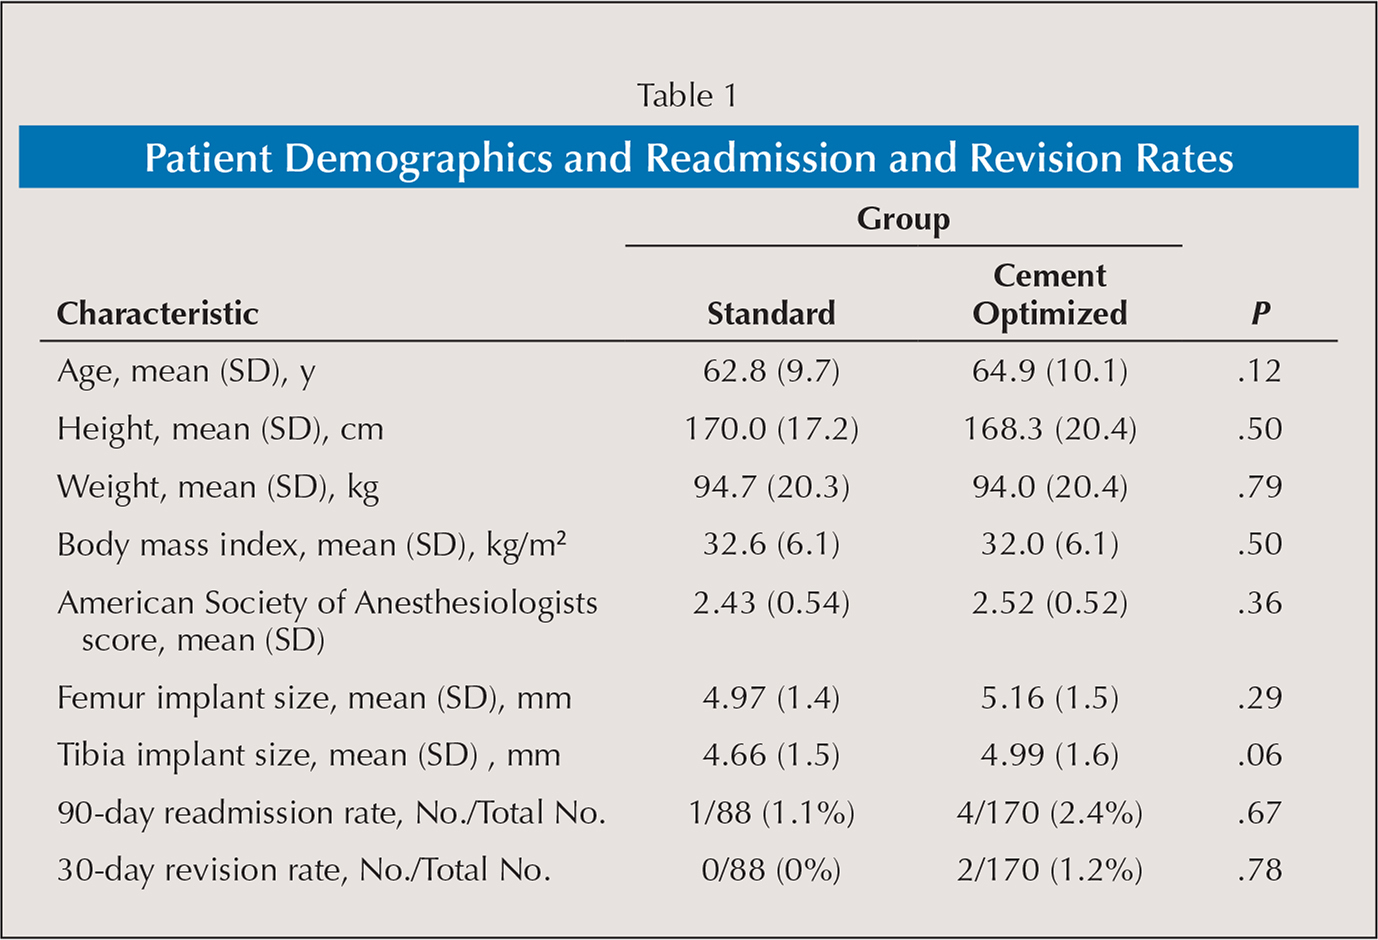 Patient Demographics and Readmission and Revision Rates